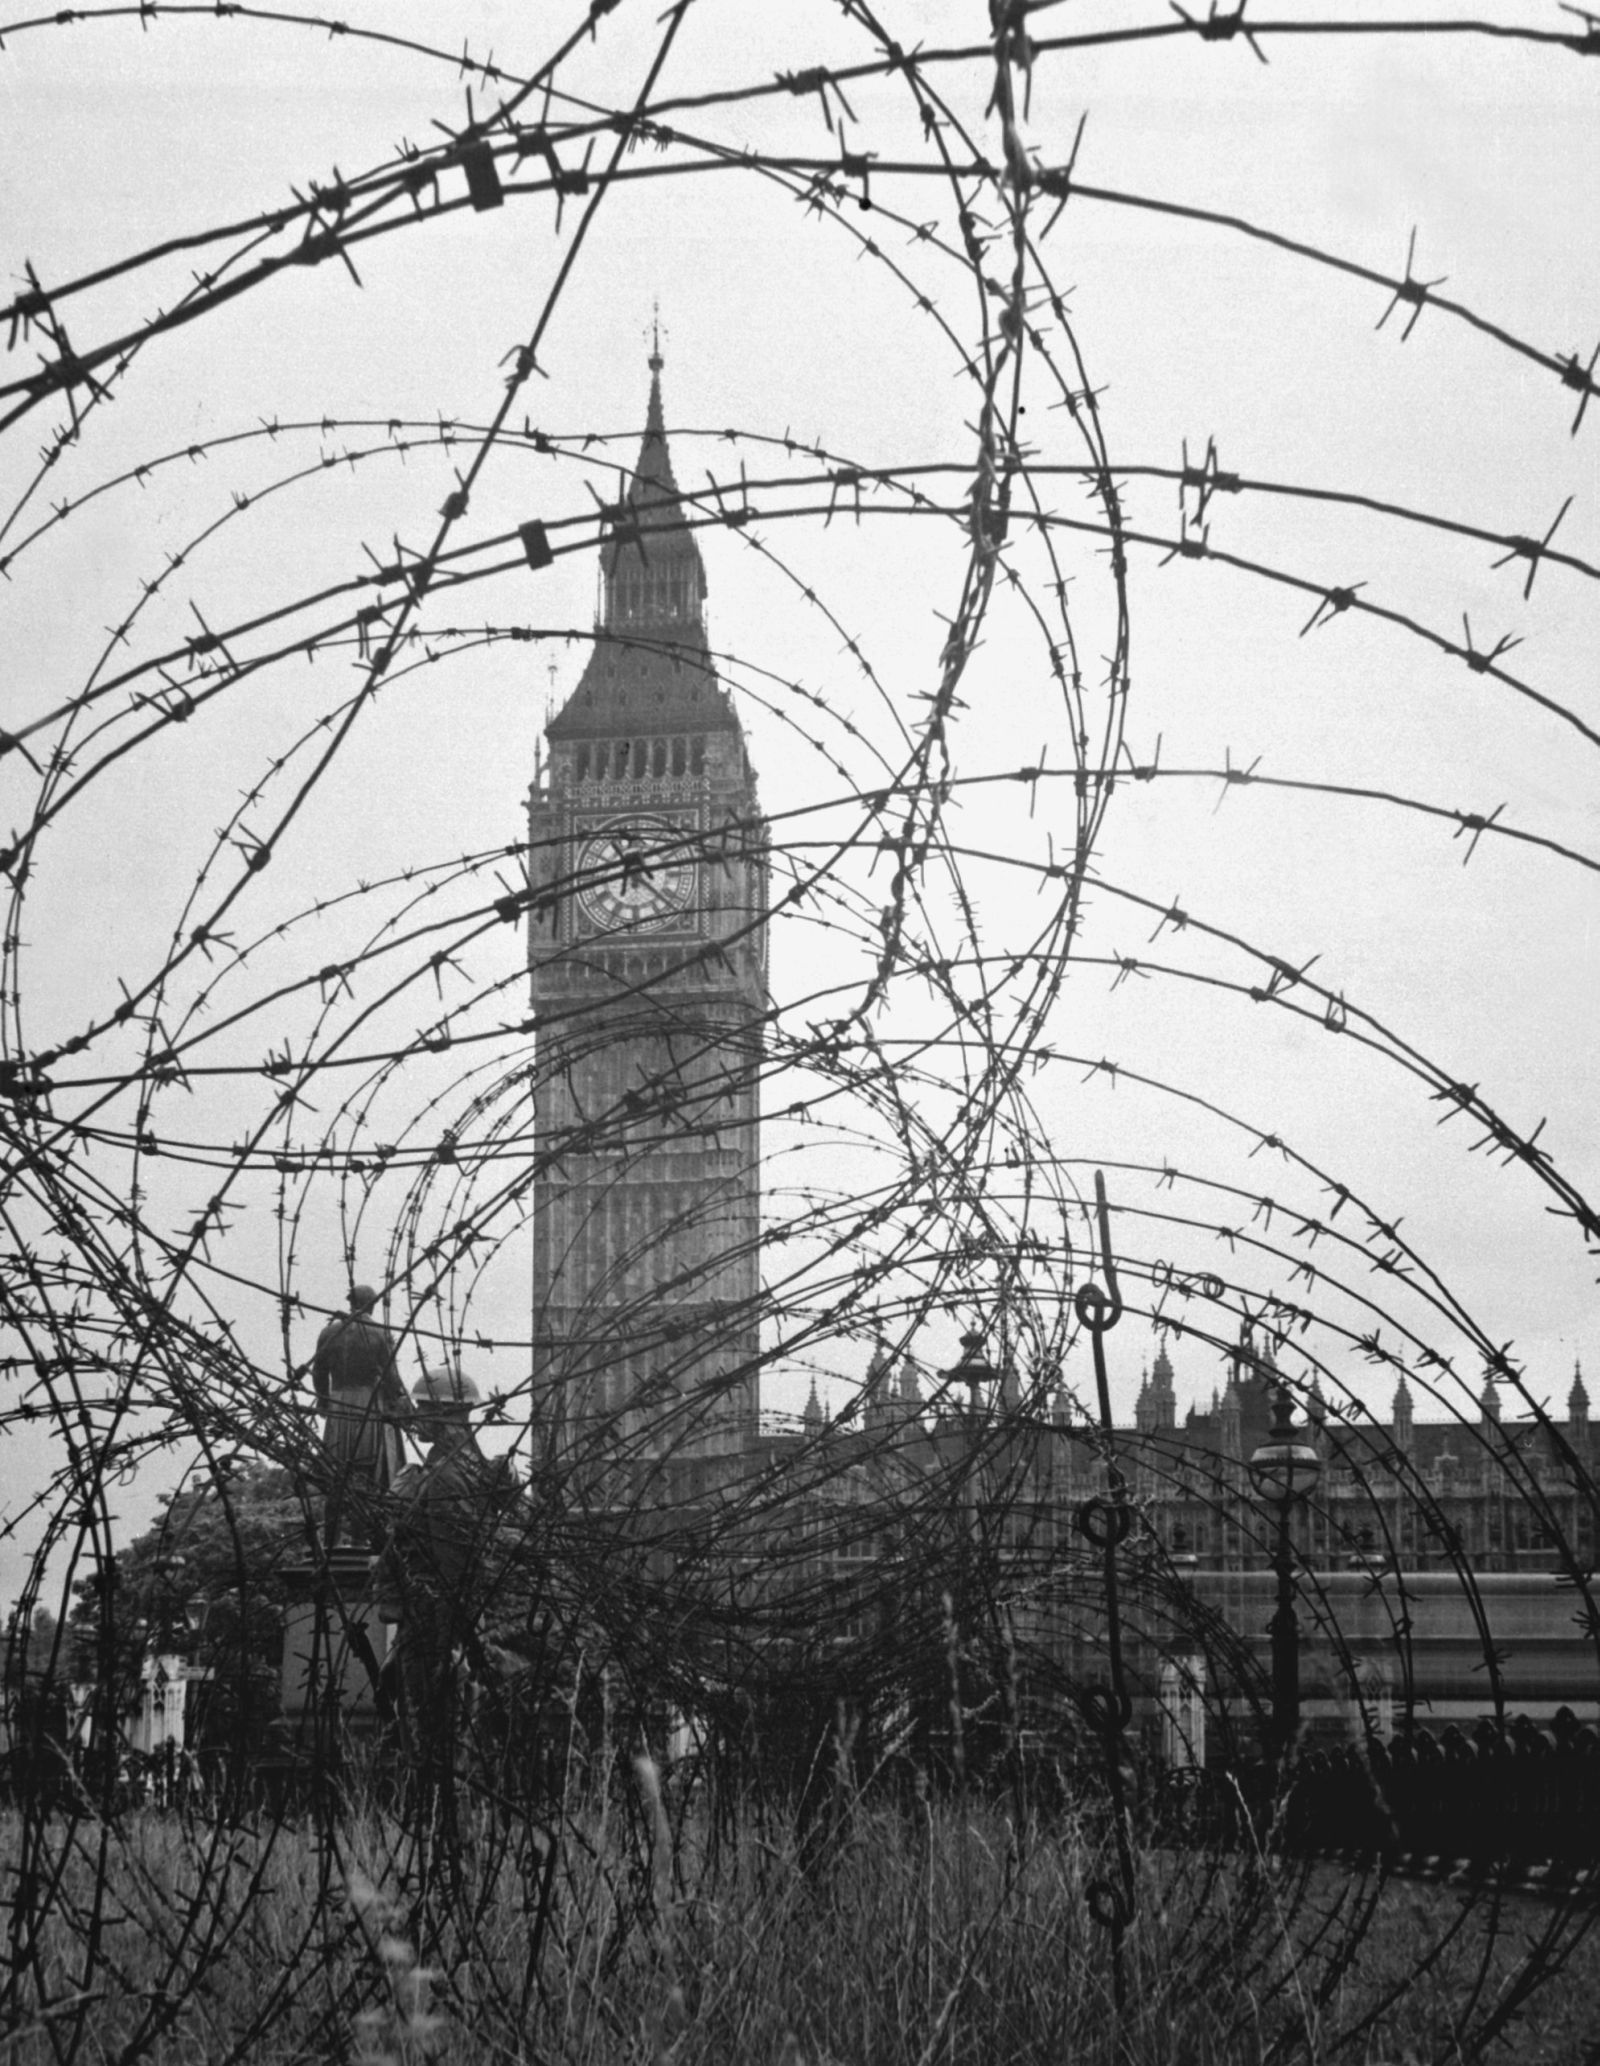 Barbed Wire near Big Ben | foto | Pinterest